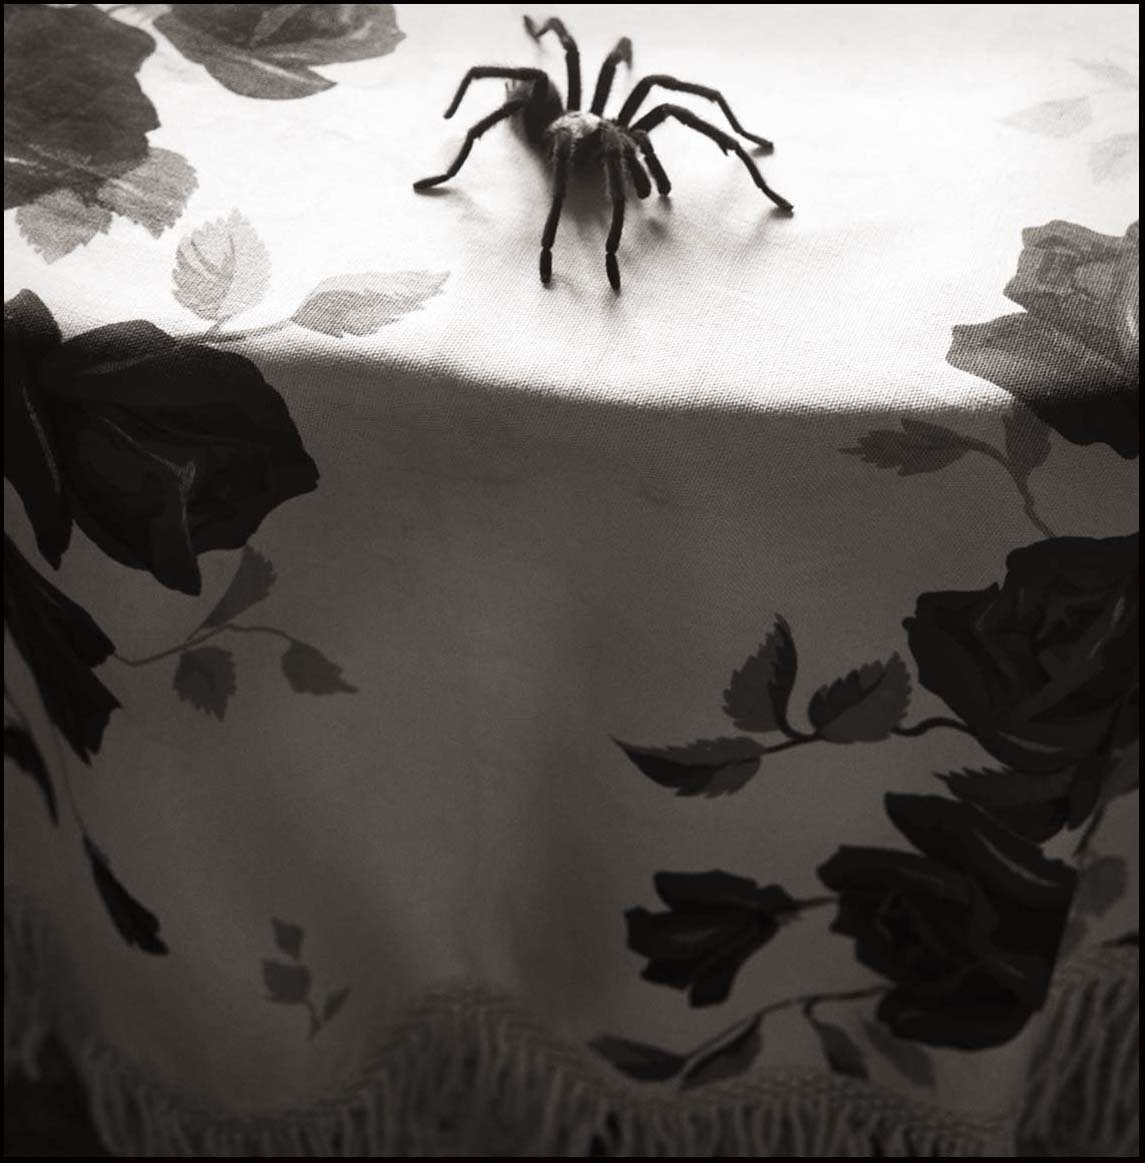 Tarantula and Tablecloth